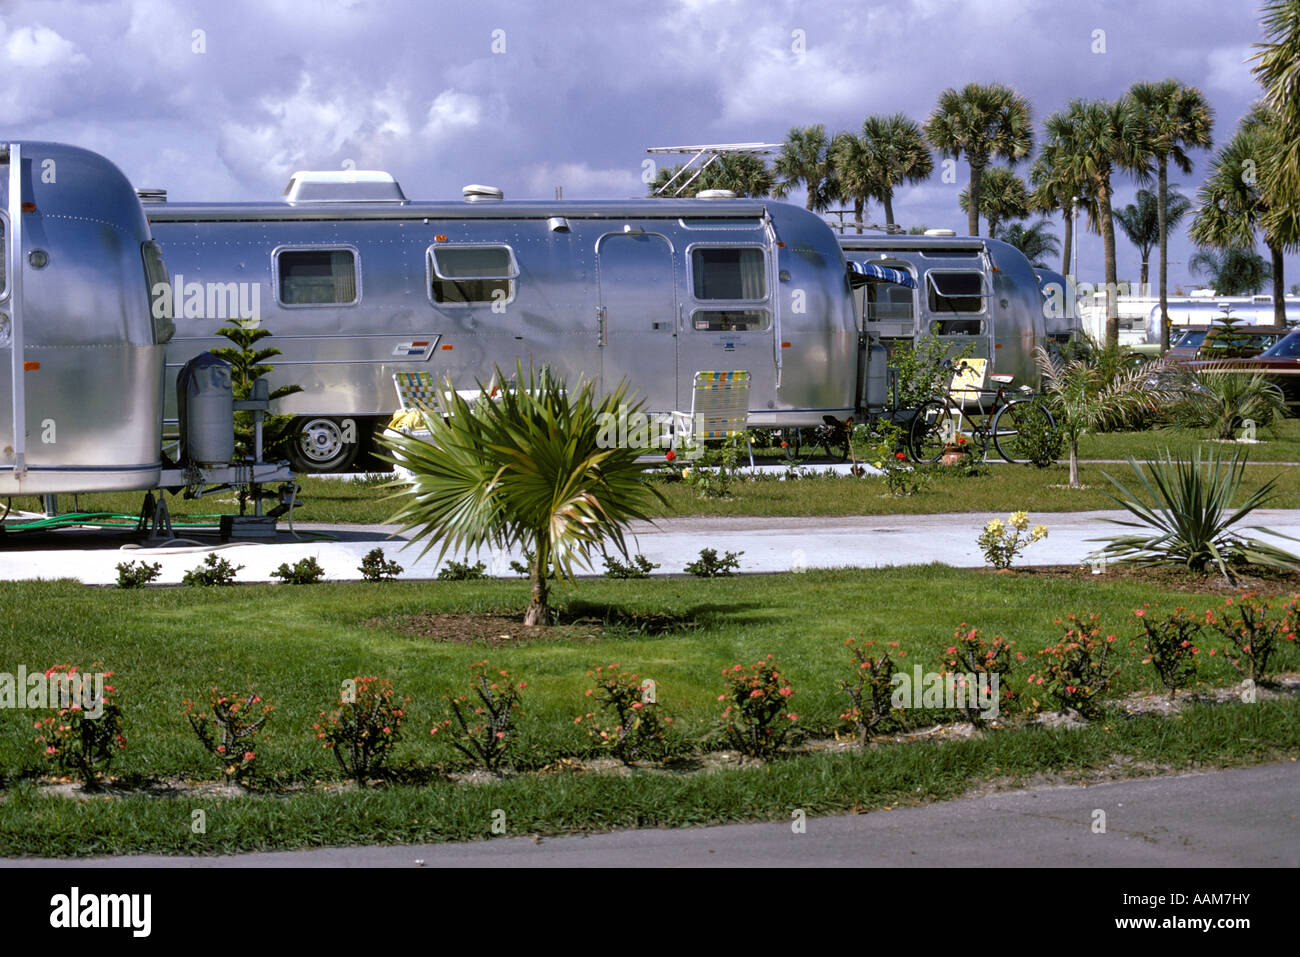 1970 1970s STEEL SILVER AIRSTREAM MOBILE HOME IN FLORIDA TRAILER PARK